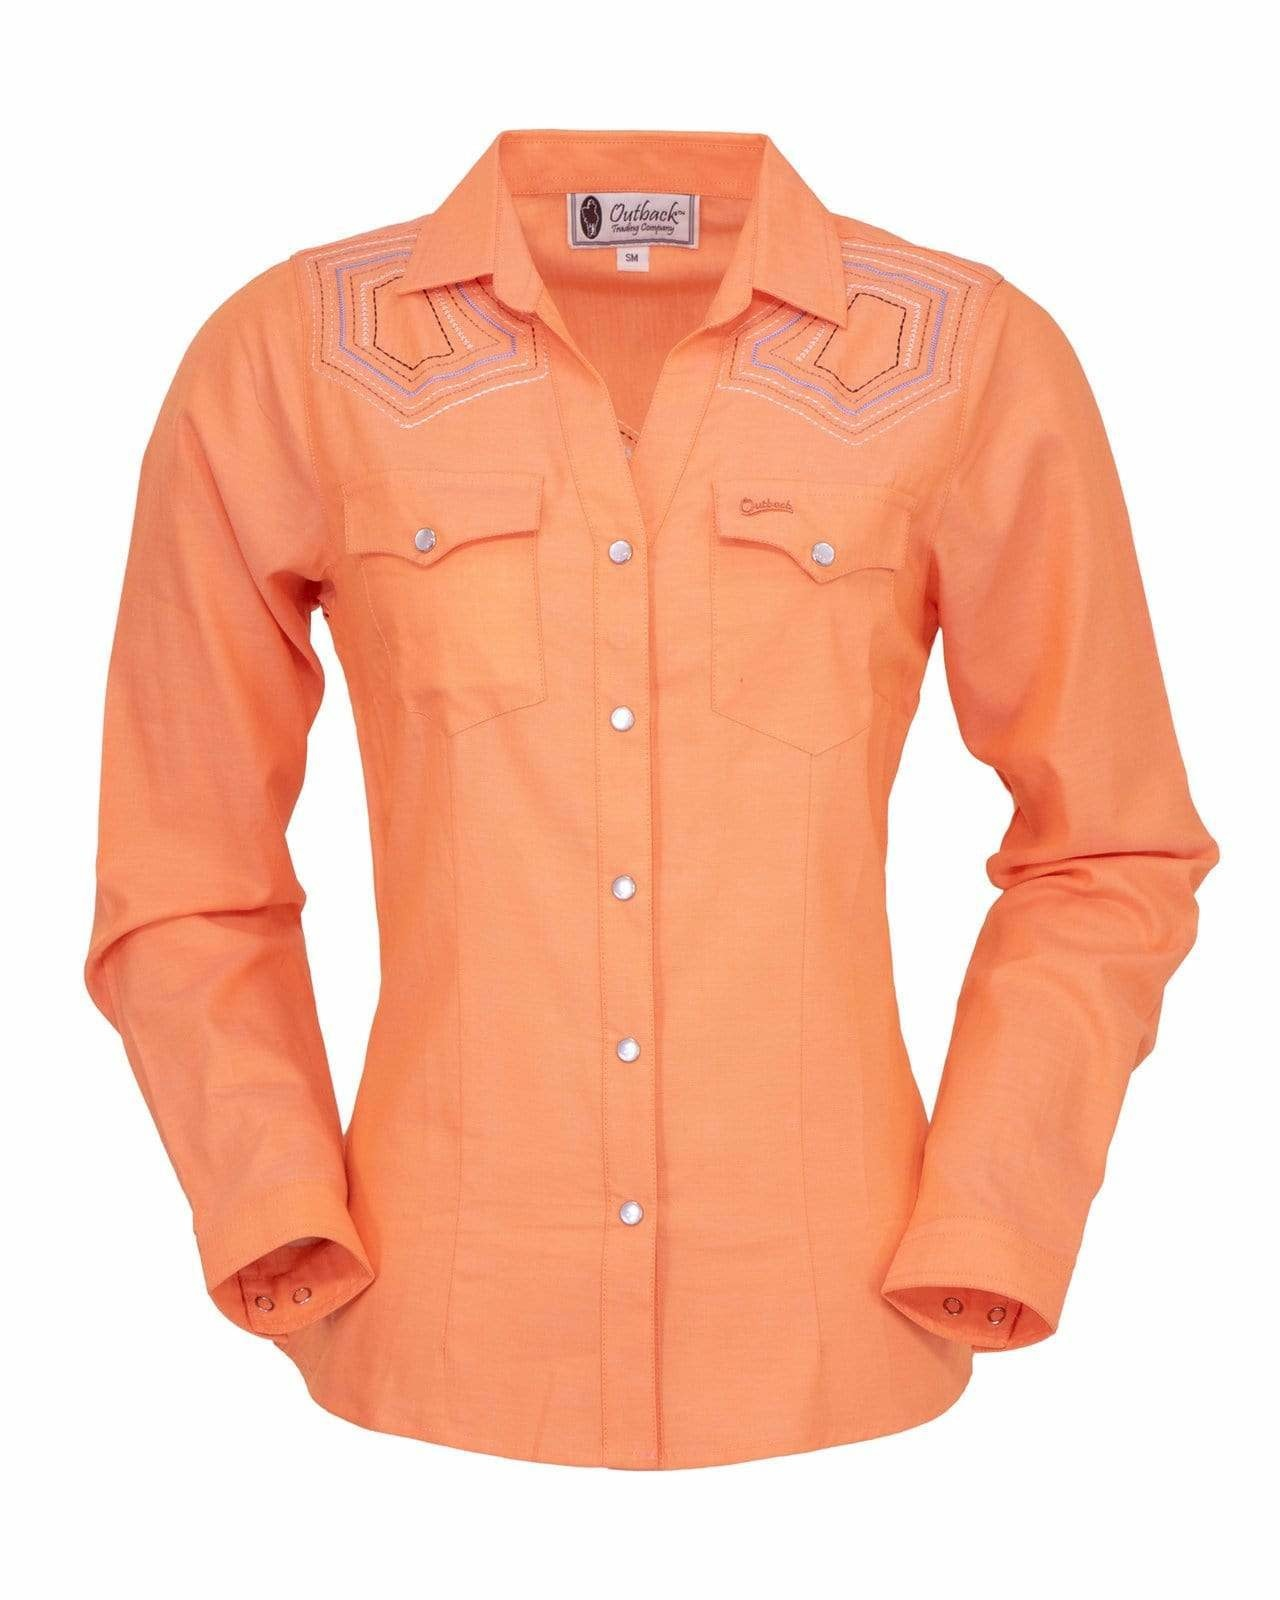 Outback Women's Outback Katie Shirt